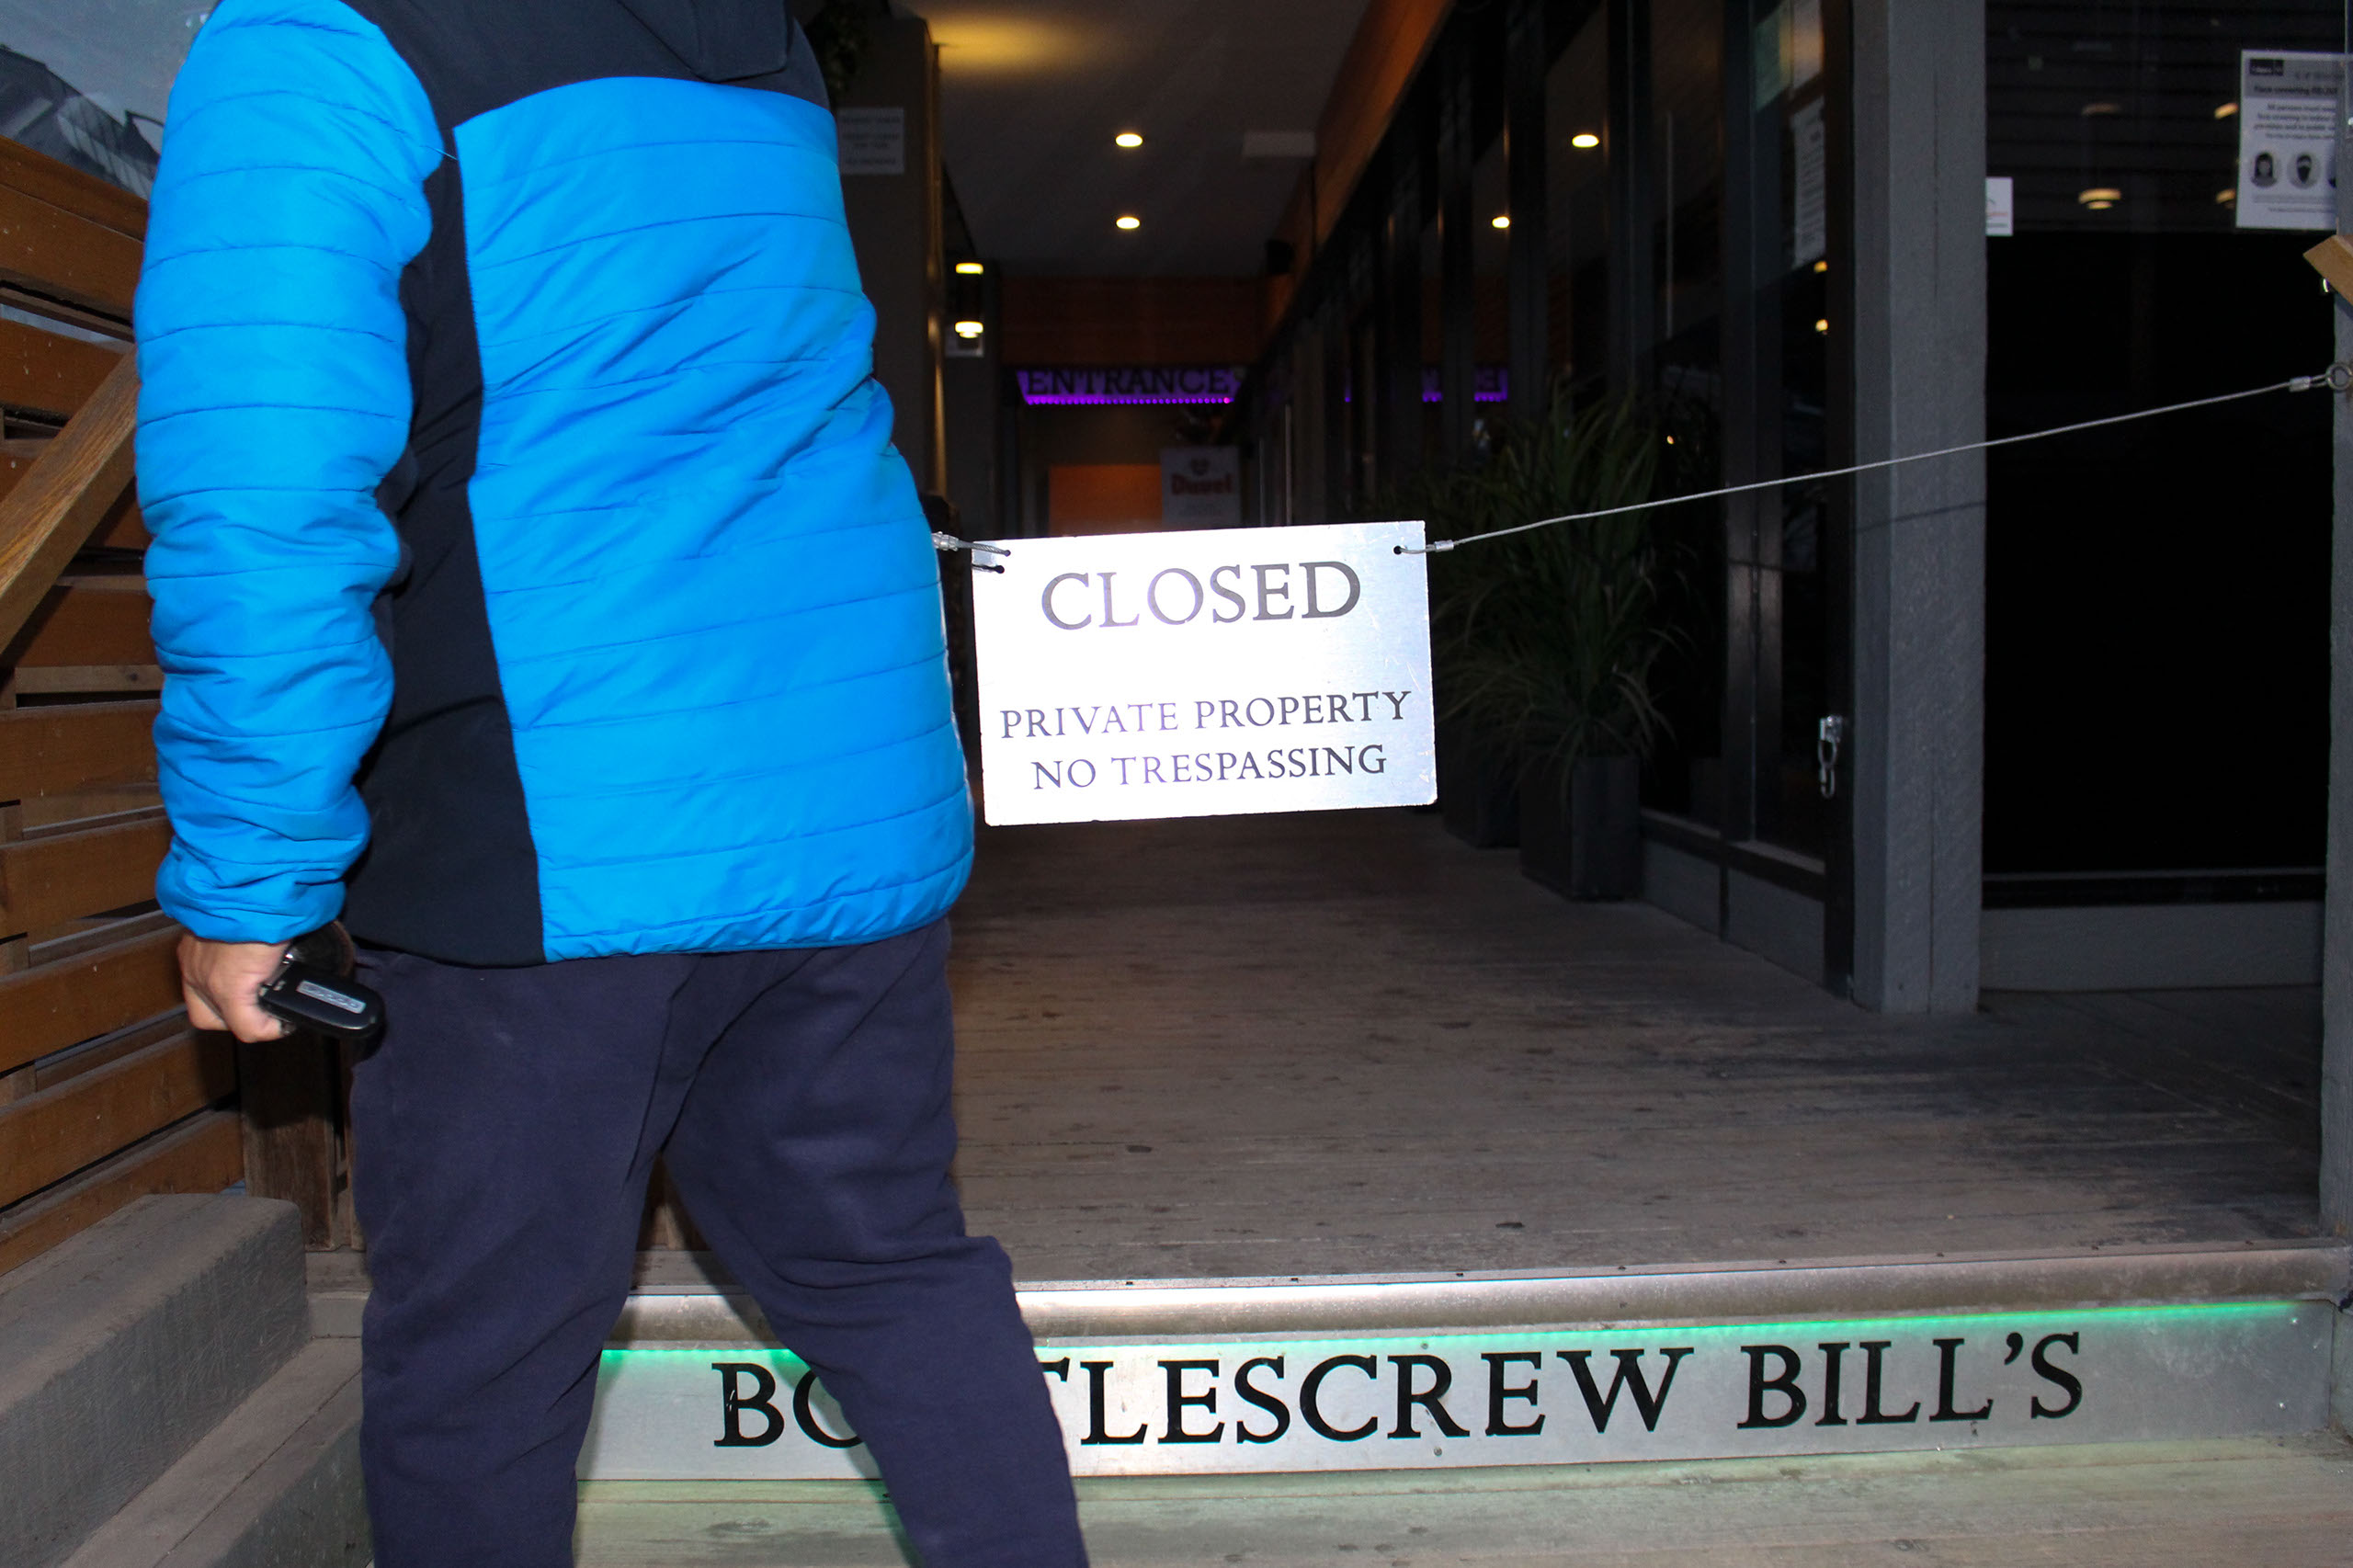 Francisco Melgar removes the closed fencing briefly before proceeding into Bottlescrew Bill's to clean in Calgary on April 15, 2021. Bottlescrew Bill's and Buzzard's is a bar in downtown Calgary on 10 Avenue S.W., and they have been open since 1980. They are known for their menu of beers from countries all around the world. (Photo by Alejandro Melgar/SAIT)